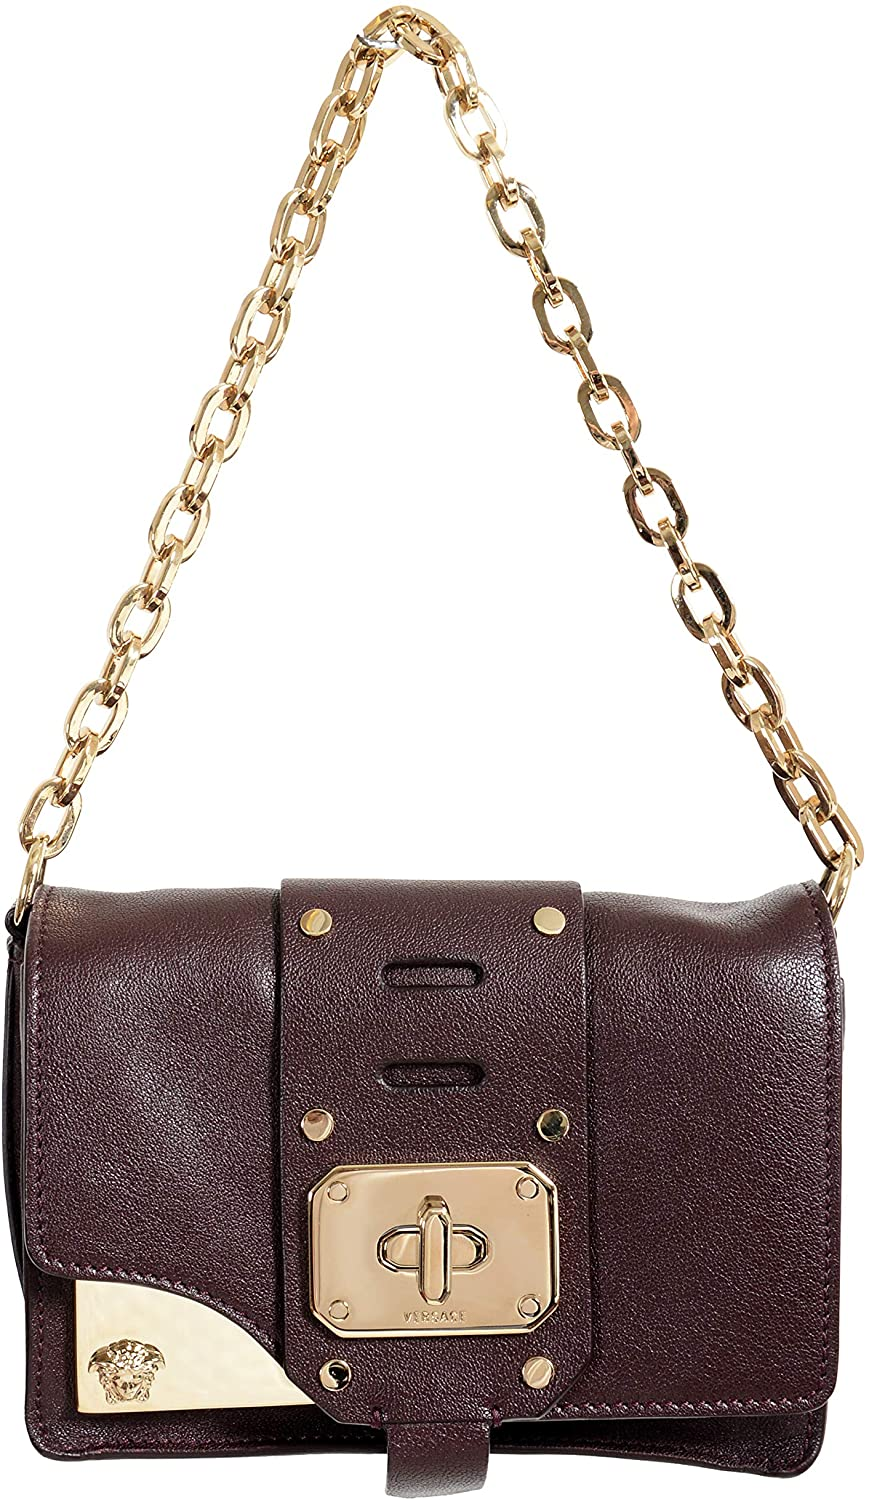 Versace 100% Leather Burgundy Womens Crossbody Shoulder Bag